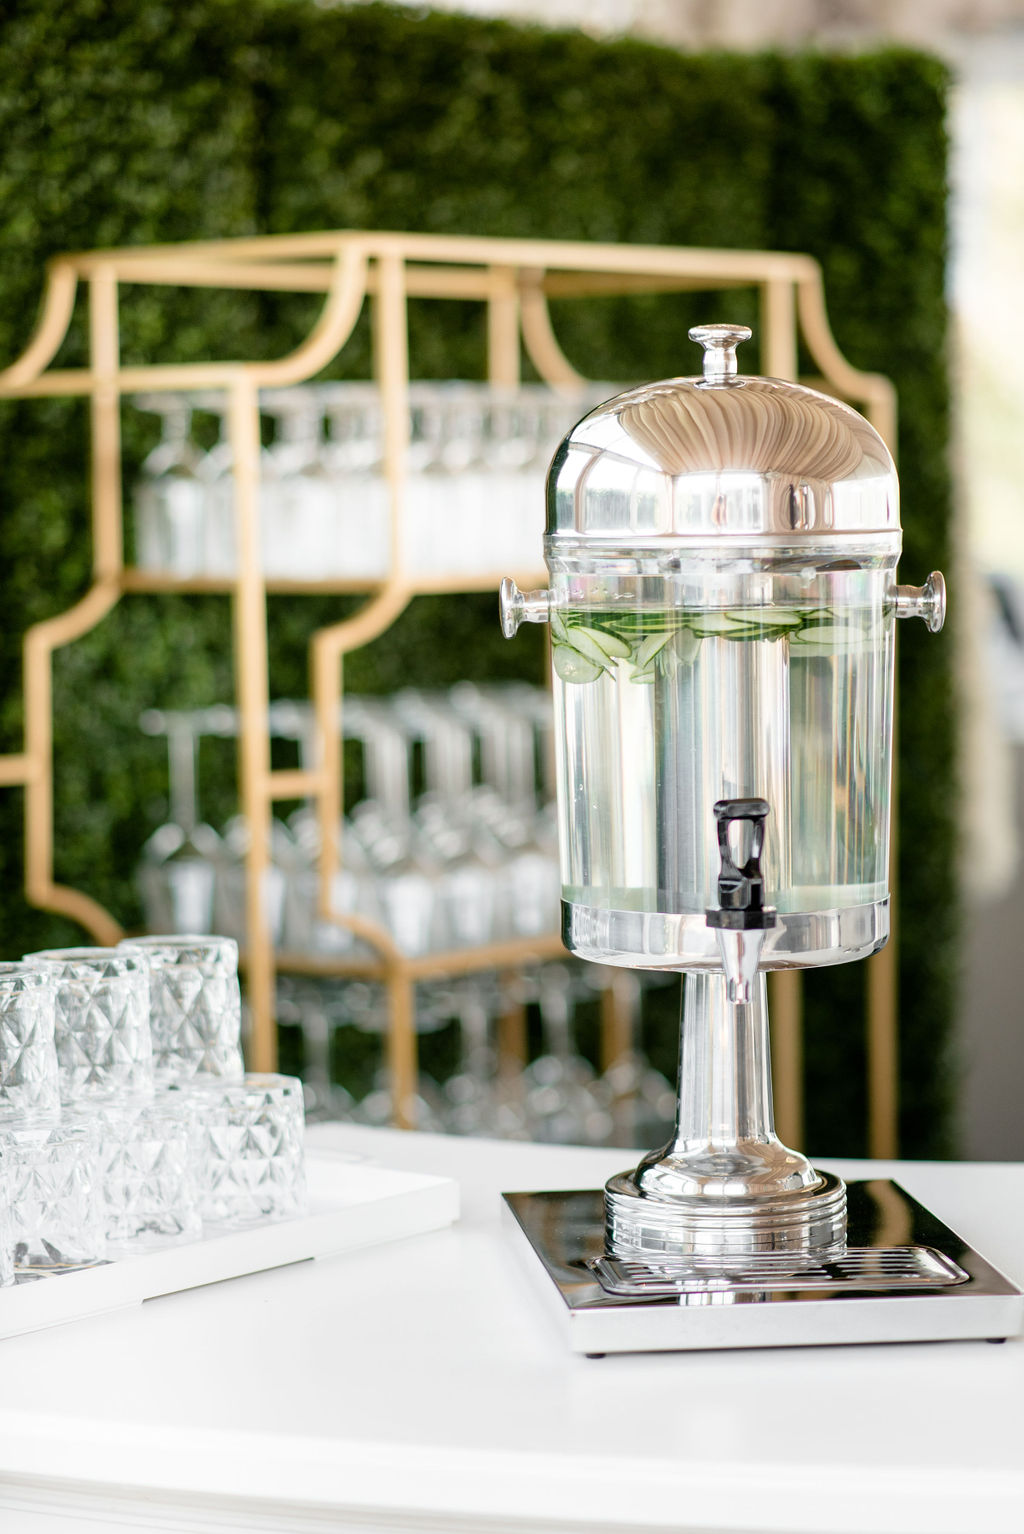 Gallery image for Non-insulated Beverage Dispenser